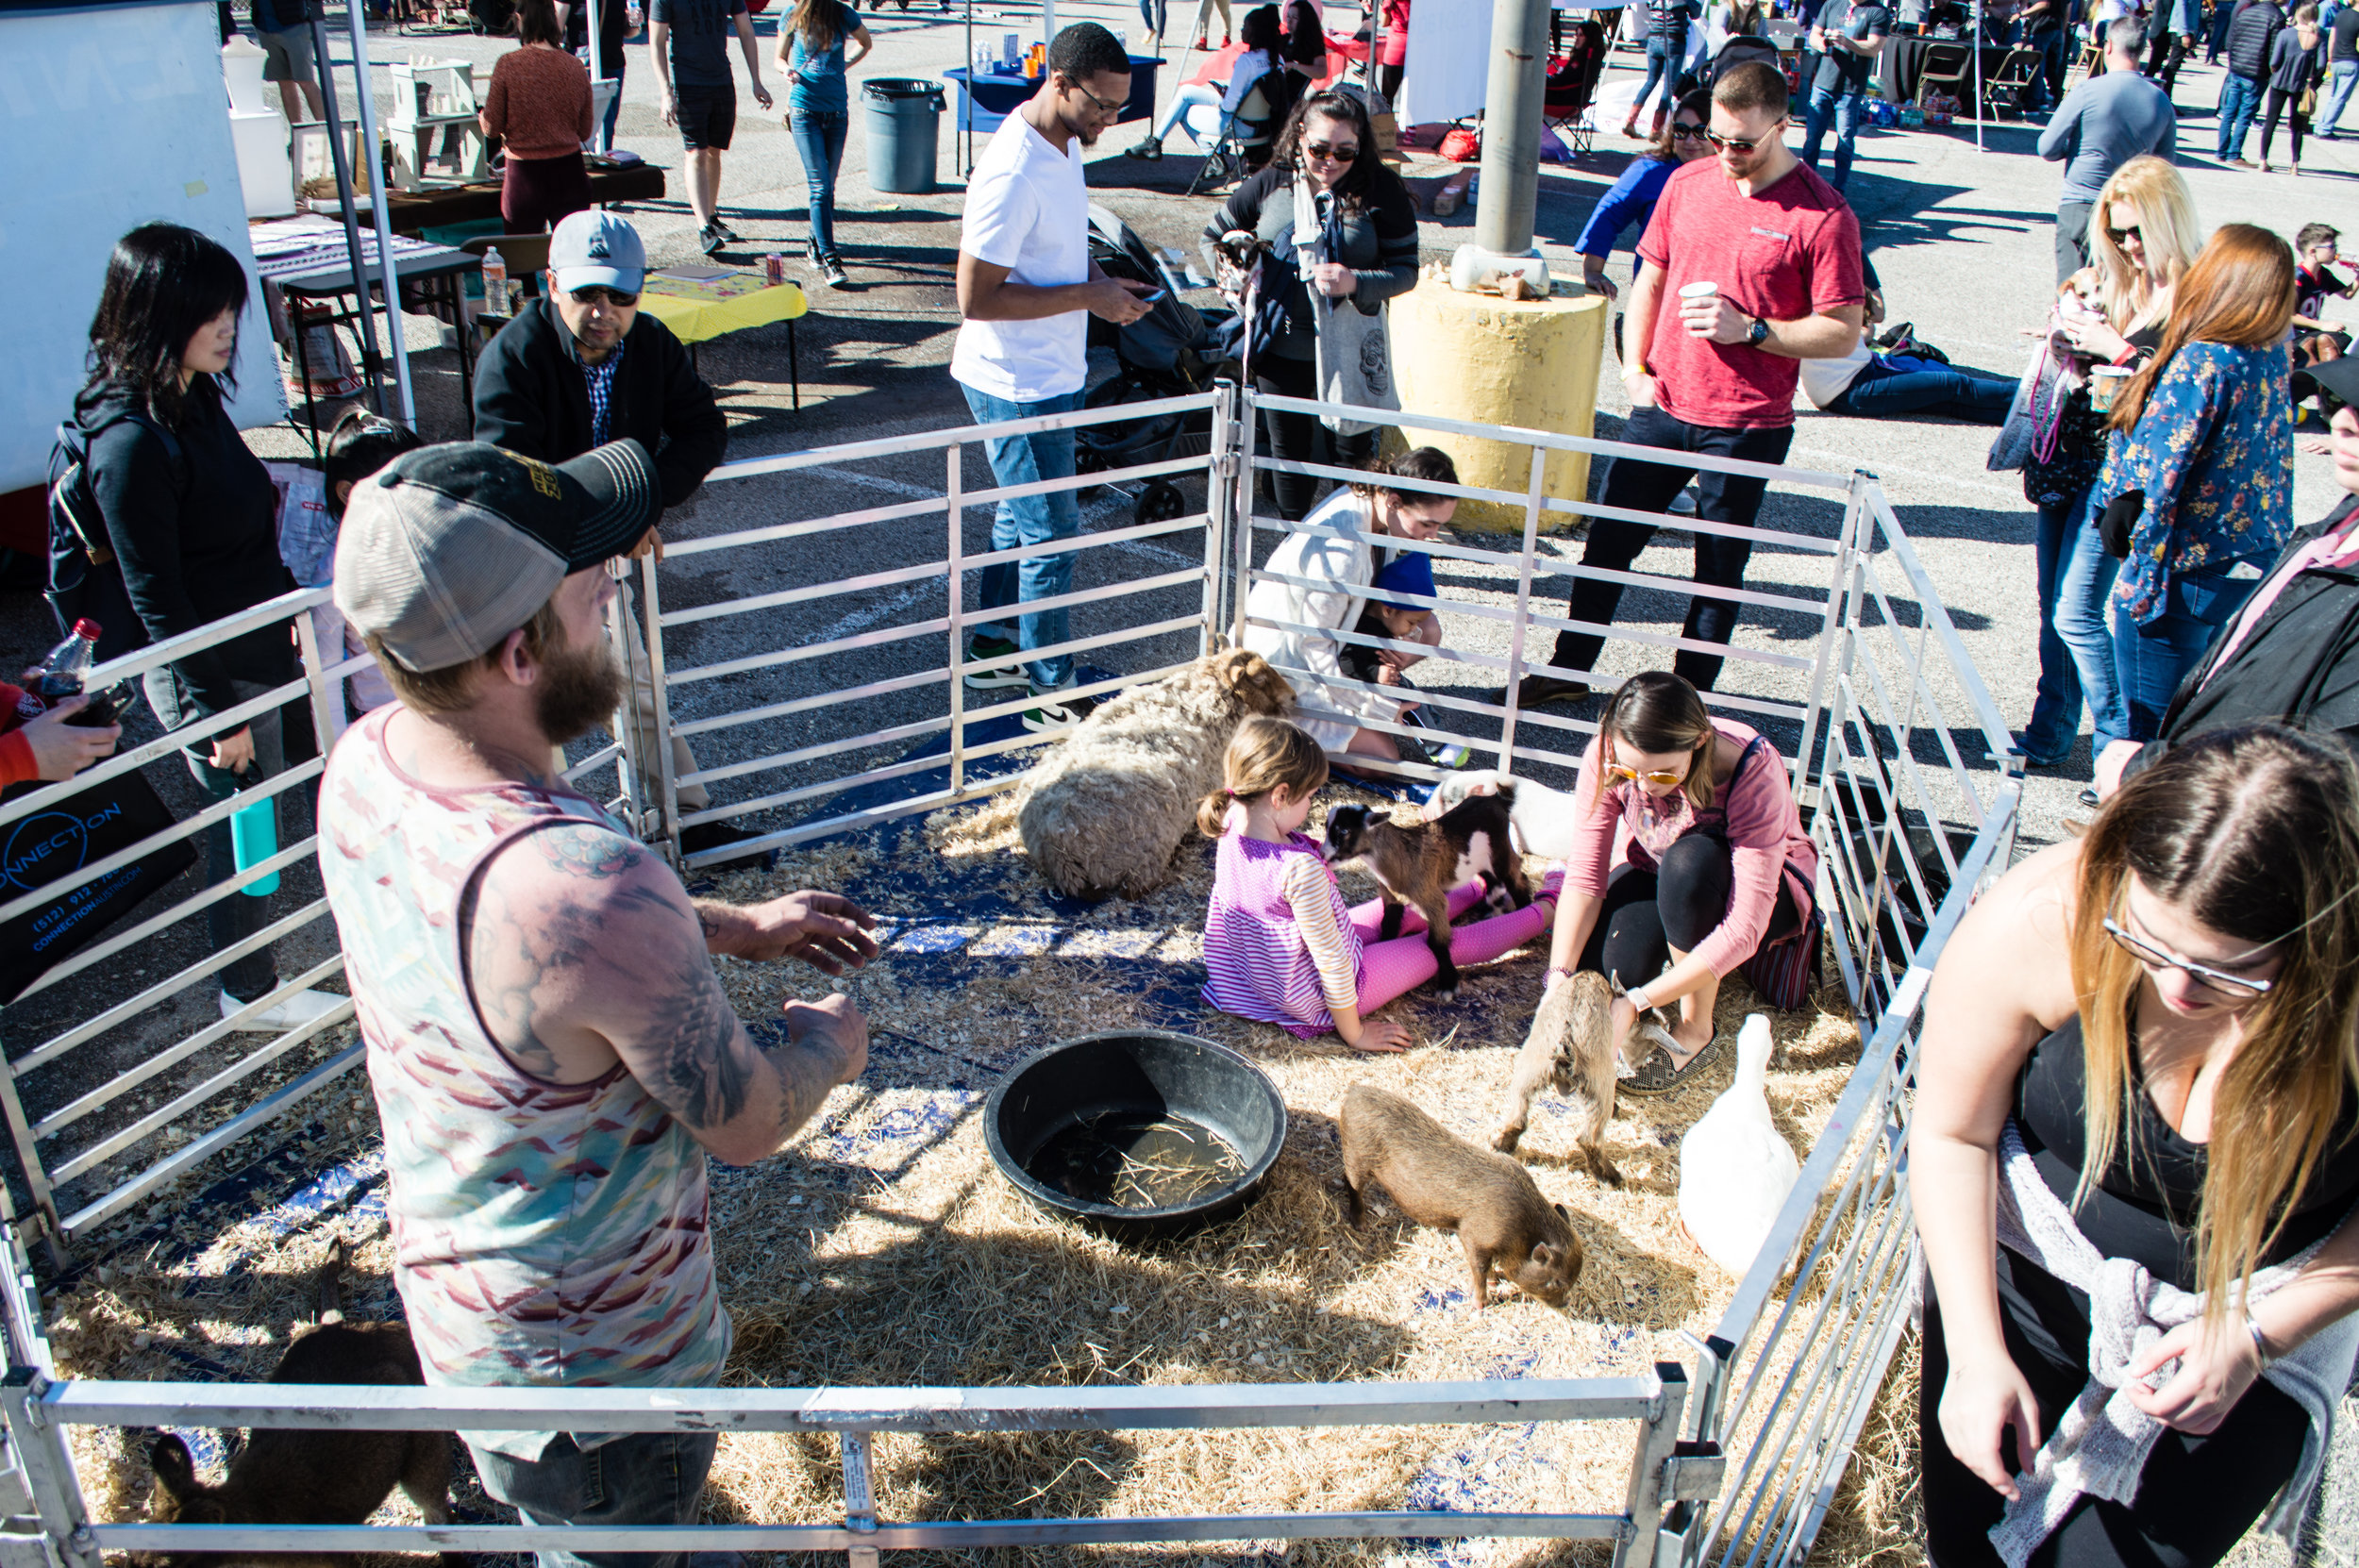 David Poku's Food Truck Festivals offer much more than just delicious food, including a small petting zoo. Photo by Nick Bailey